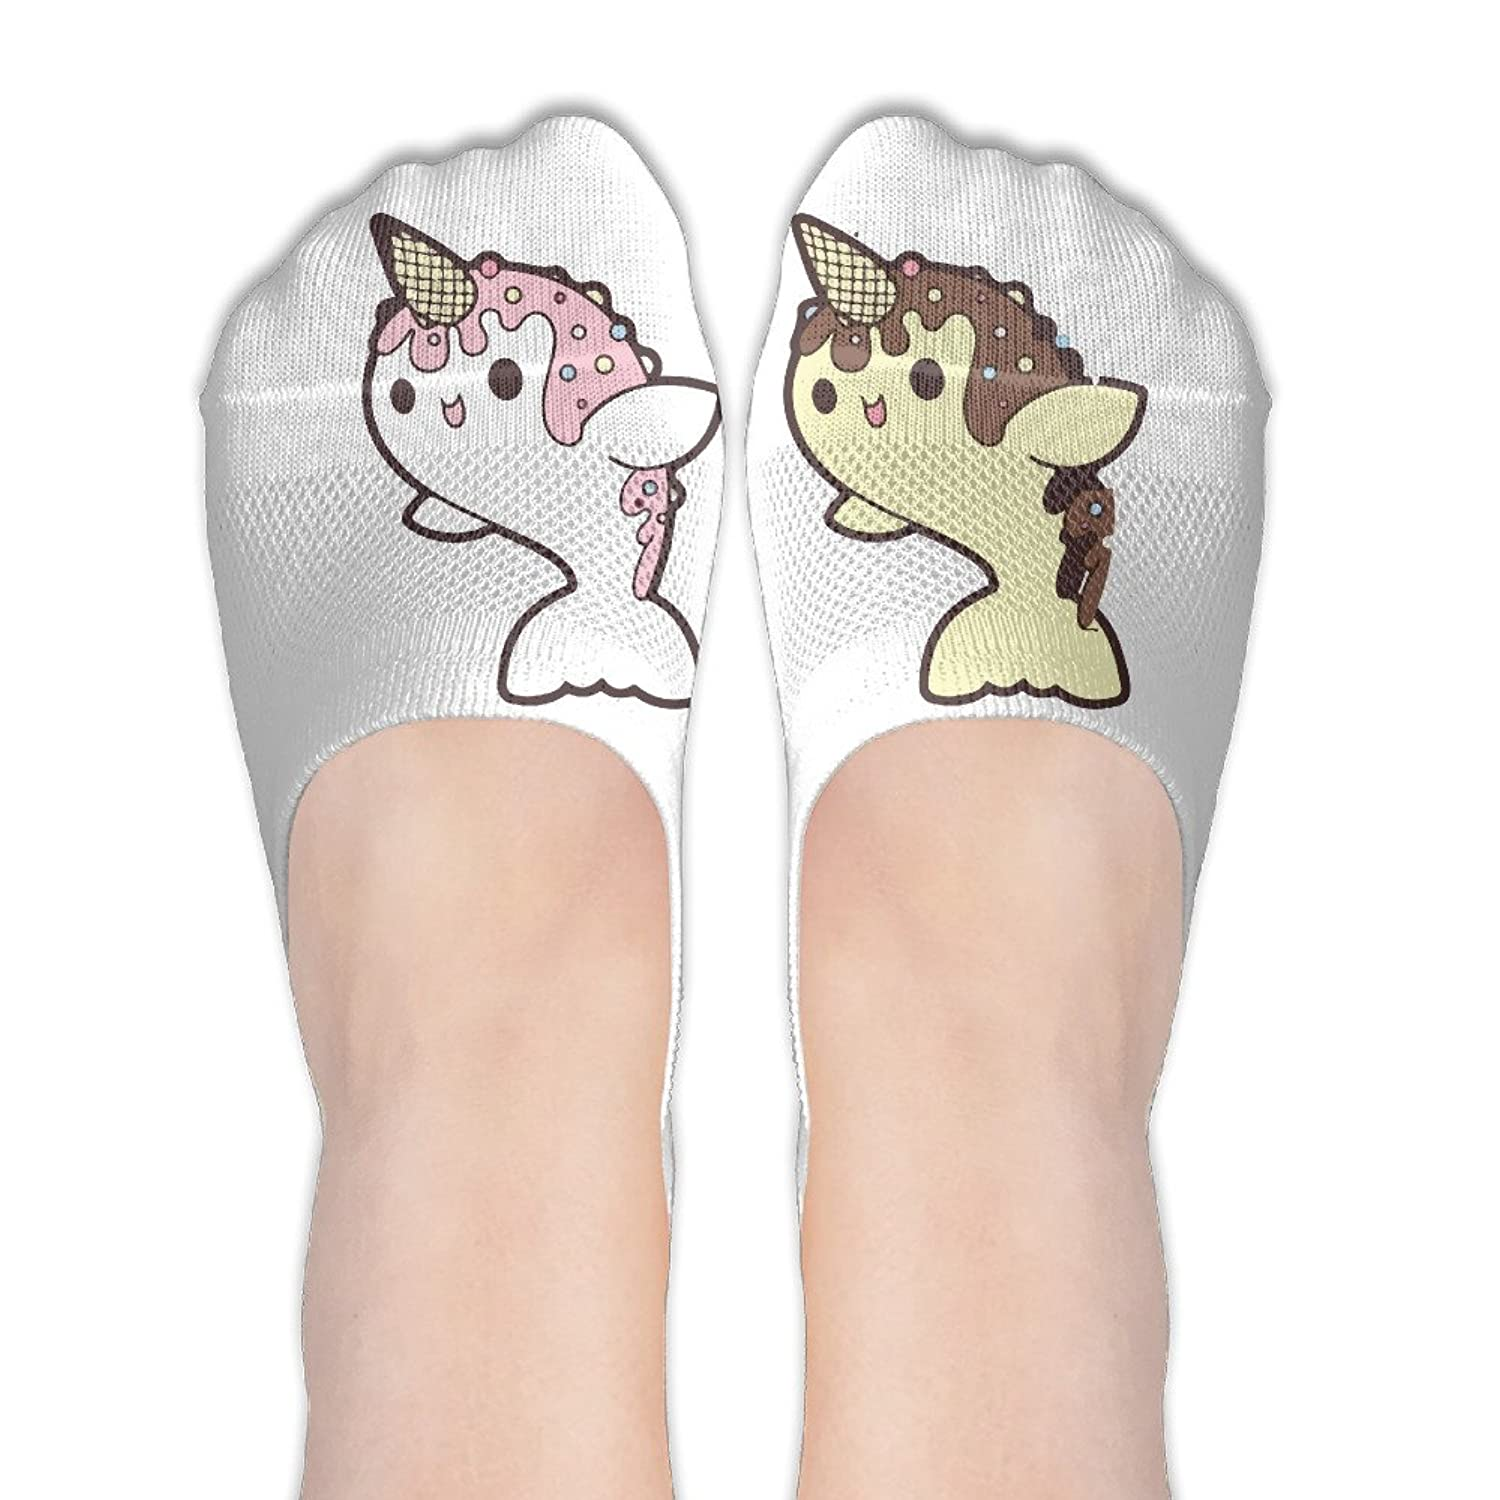 Cute Ice Cream Narwhal Women's No Show Low Cut Casual Ankle Socks